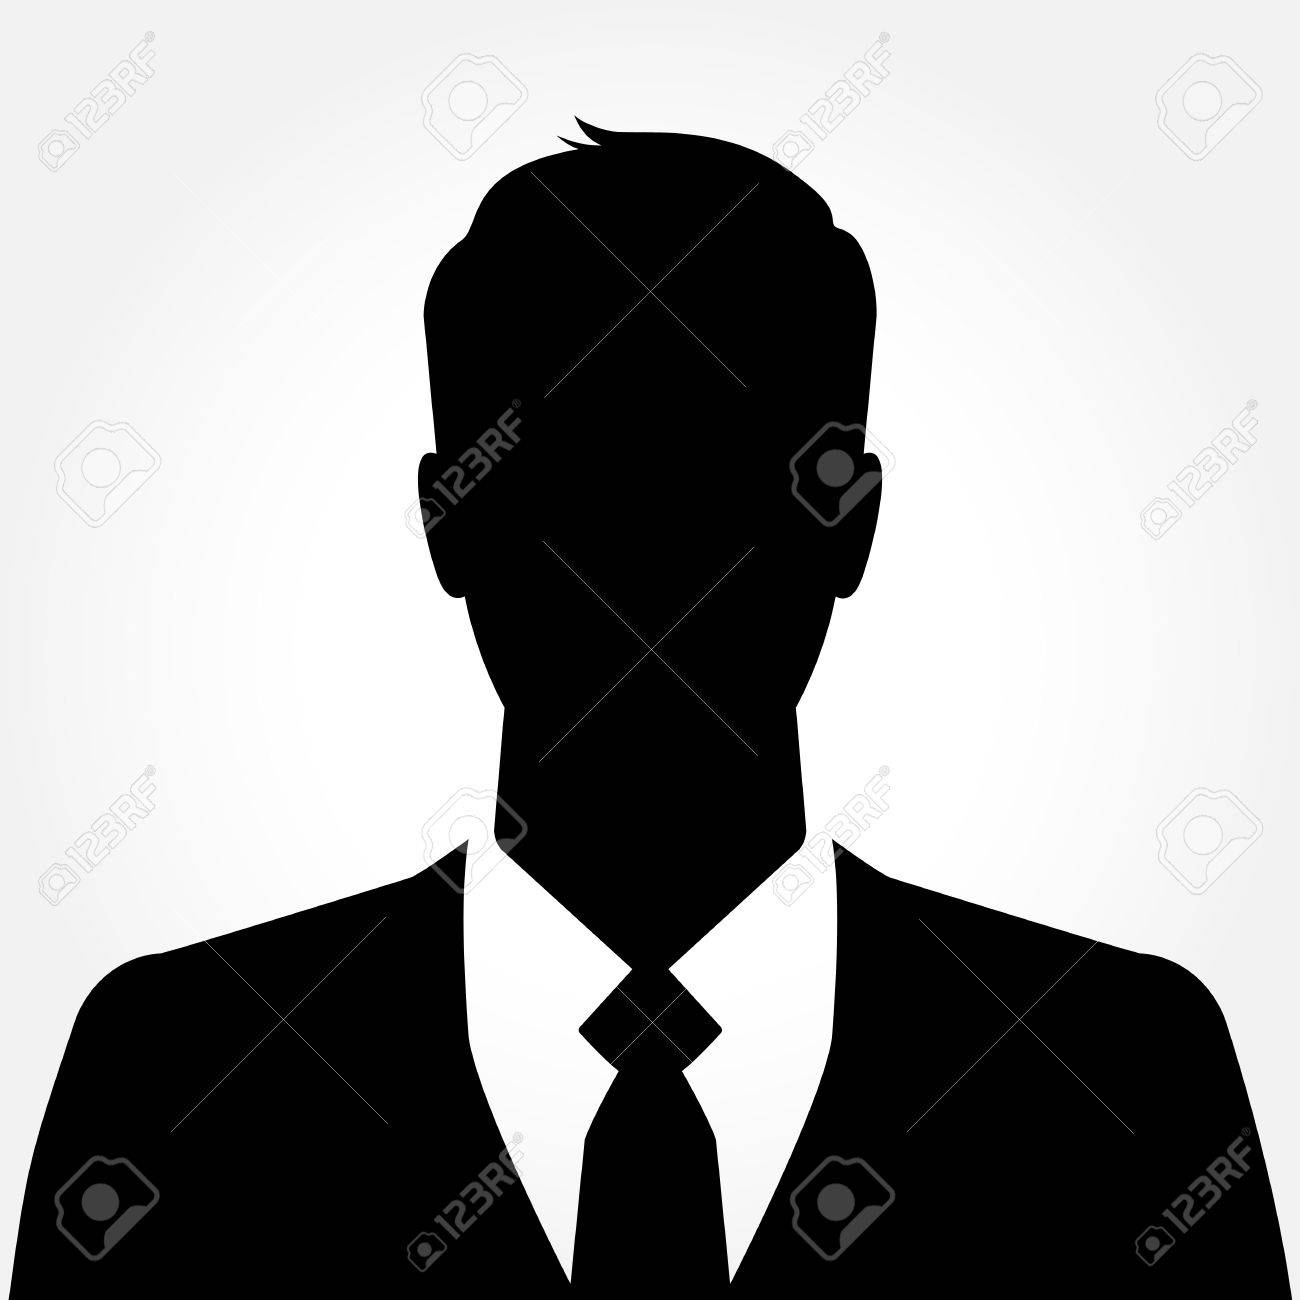 businessman silhouette avatar profile picture royalty free cliparts